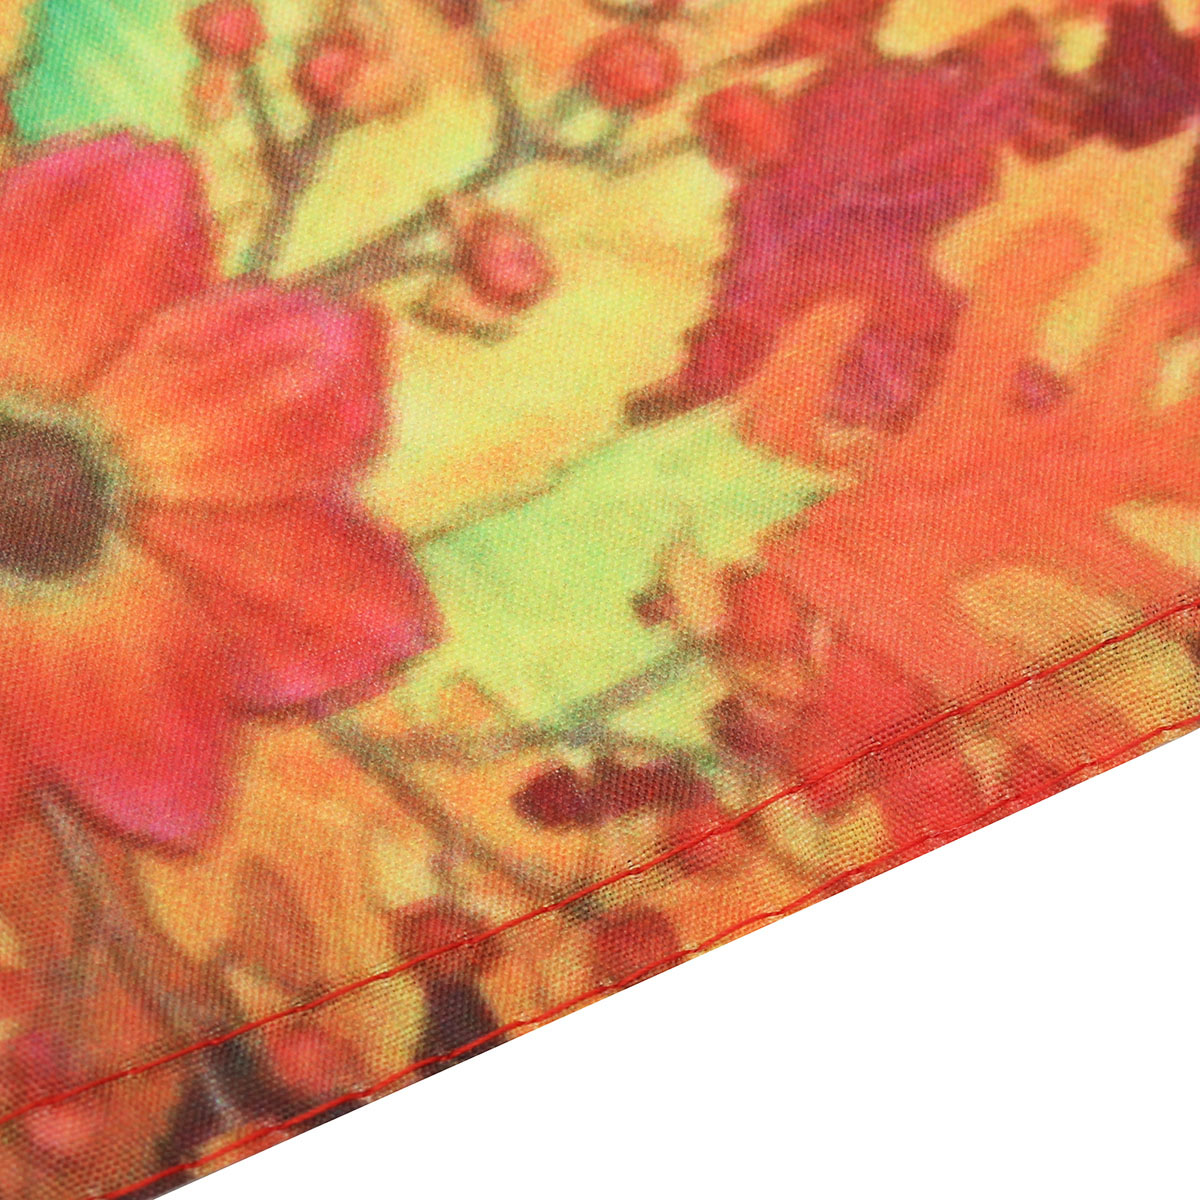 12.5''x18'' Fall Wreath Garden Flag Welcome Autumn Leaves Floral Briarwood Lane Decorations